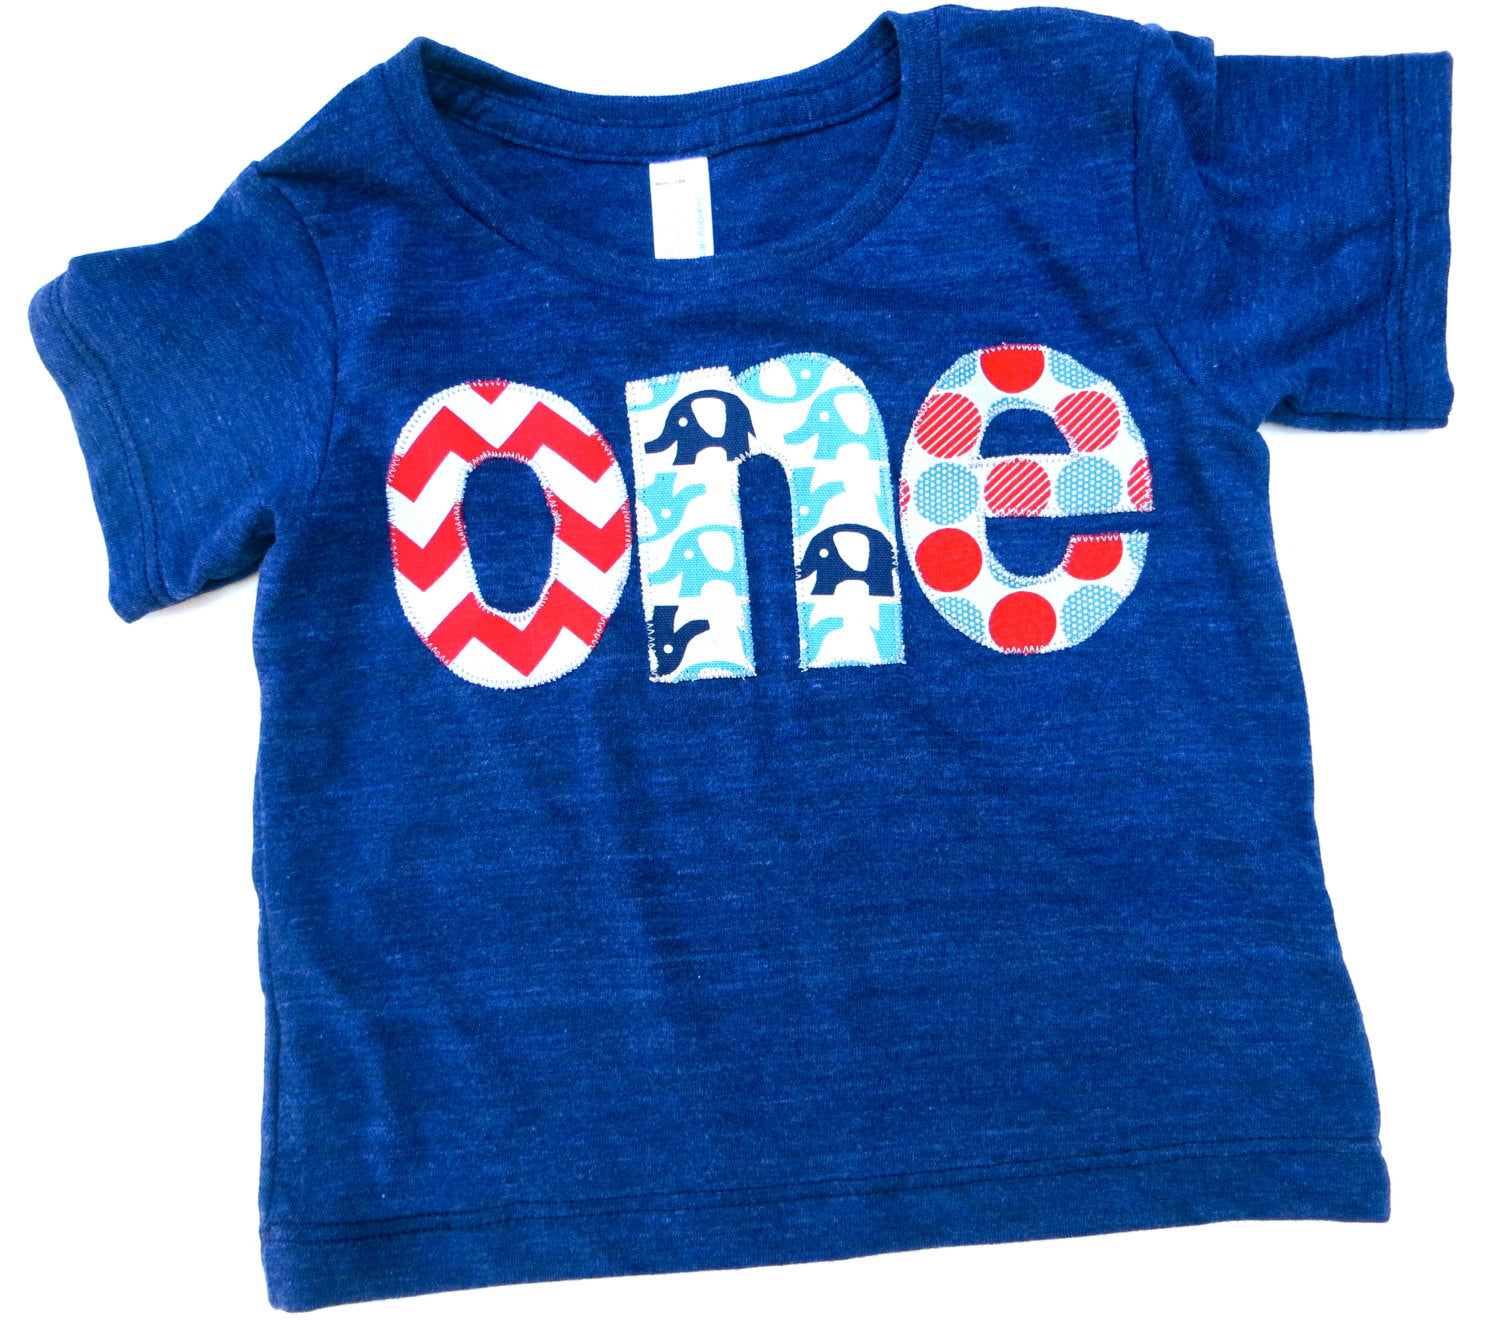 Fan Photo one lowercase with circus elephant birthday on triblend indigo for boys 1st Birthday Shirt with newborn photo annual pics